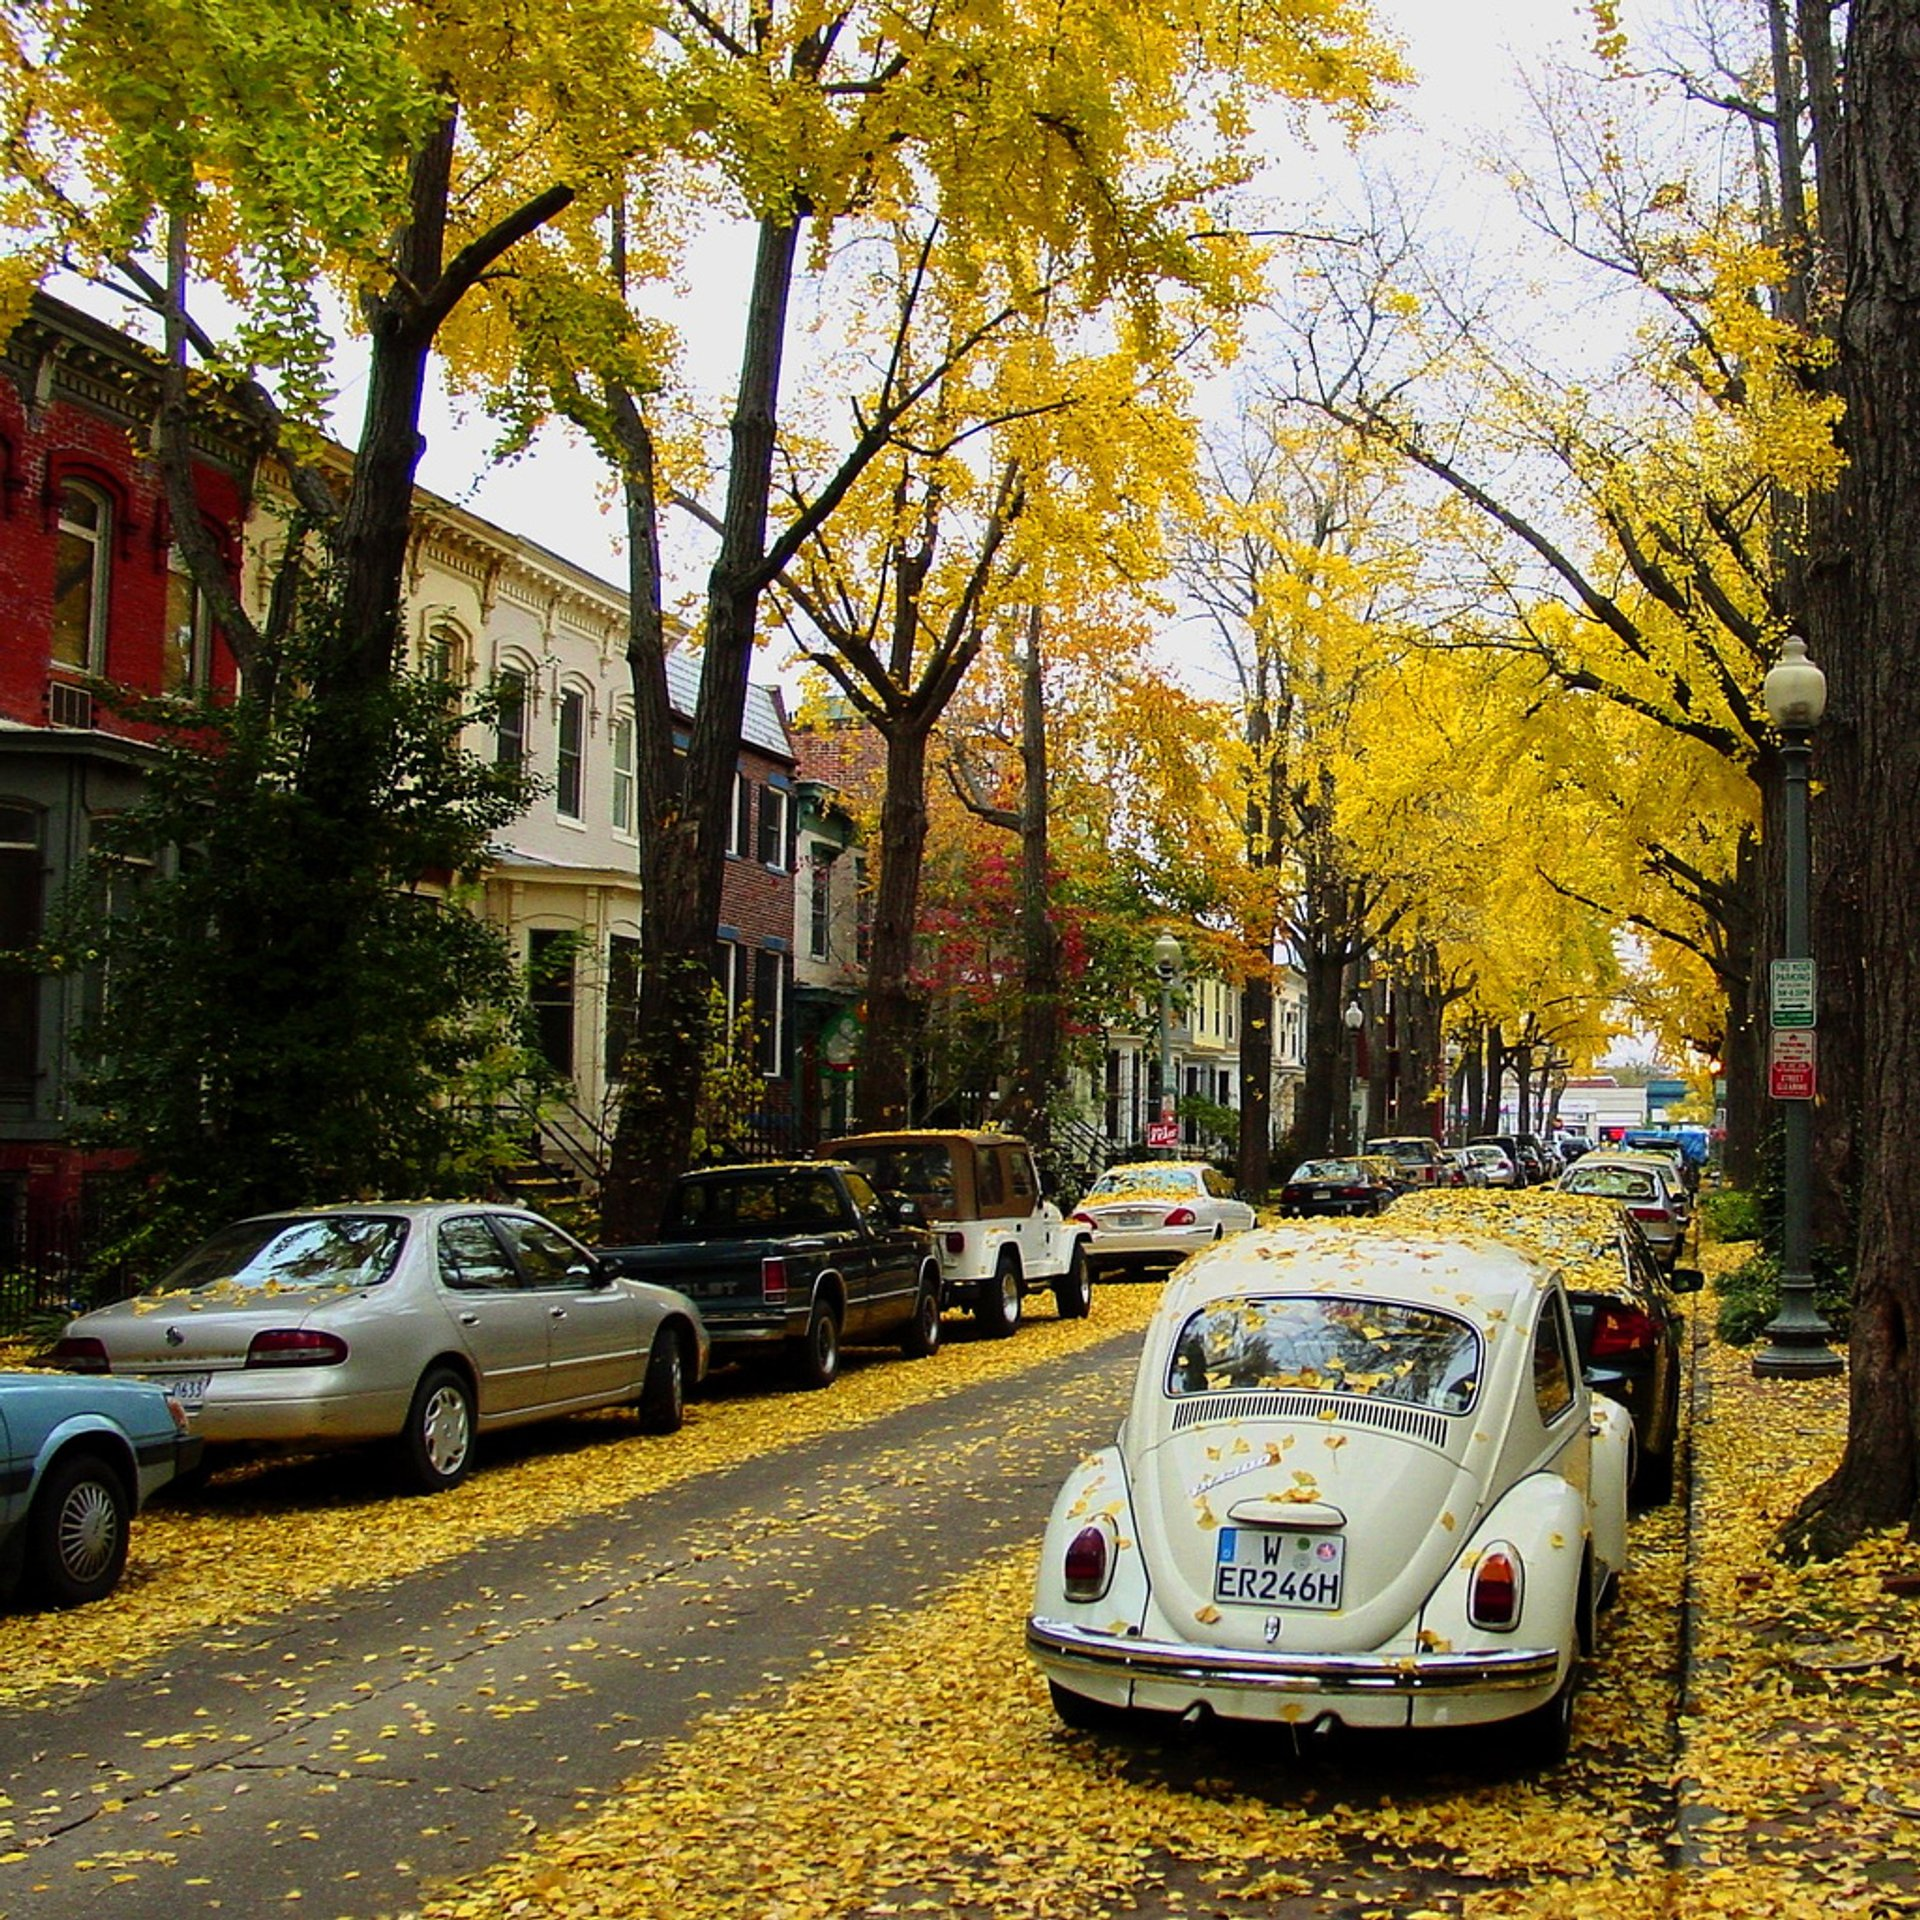 Autumn in Swann Street, Washington, D.C.  2020